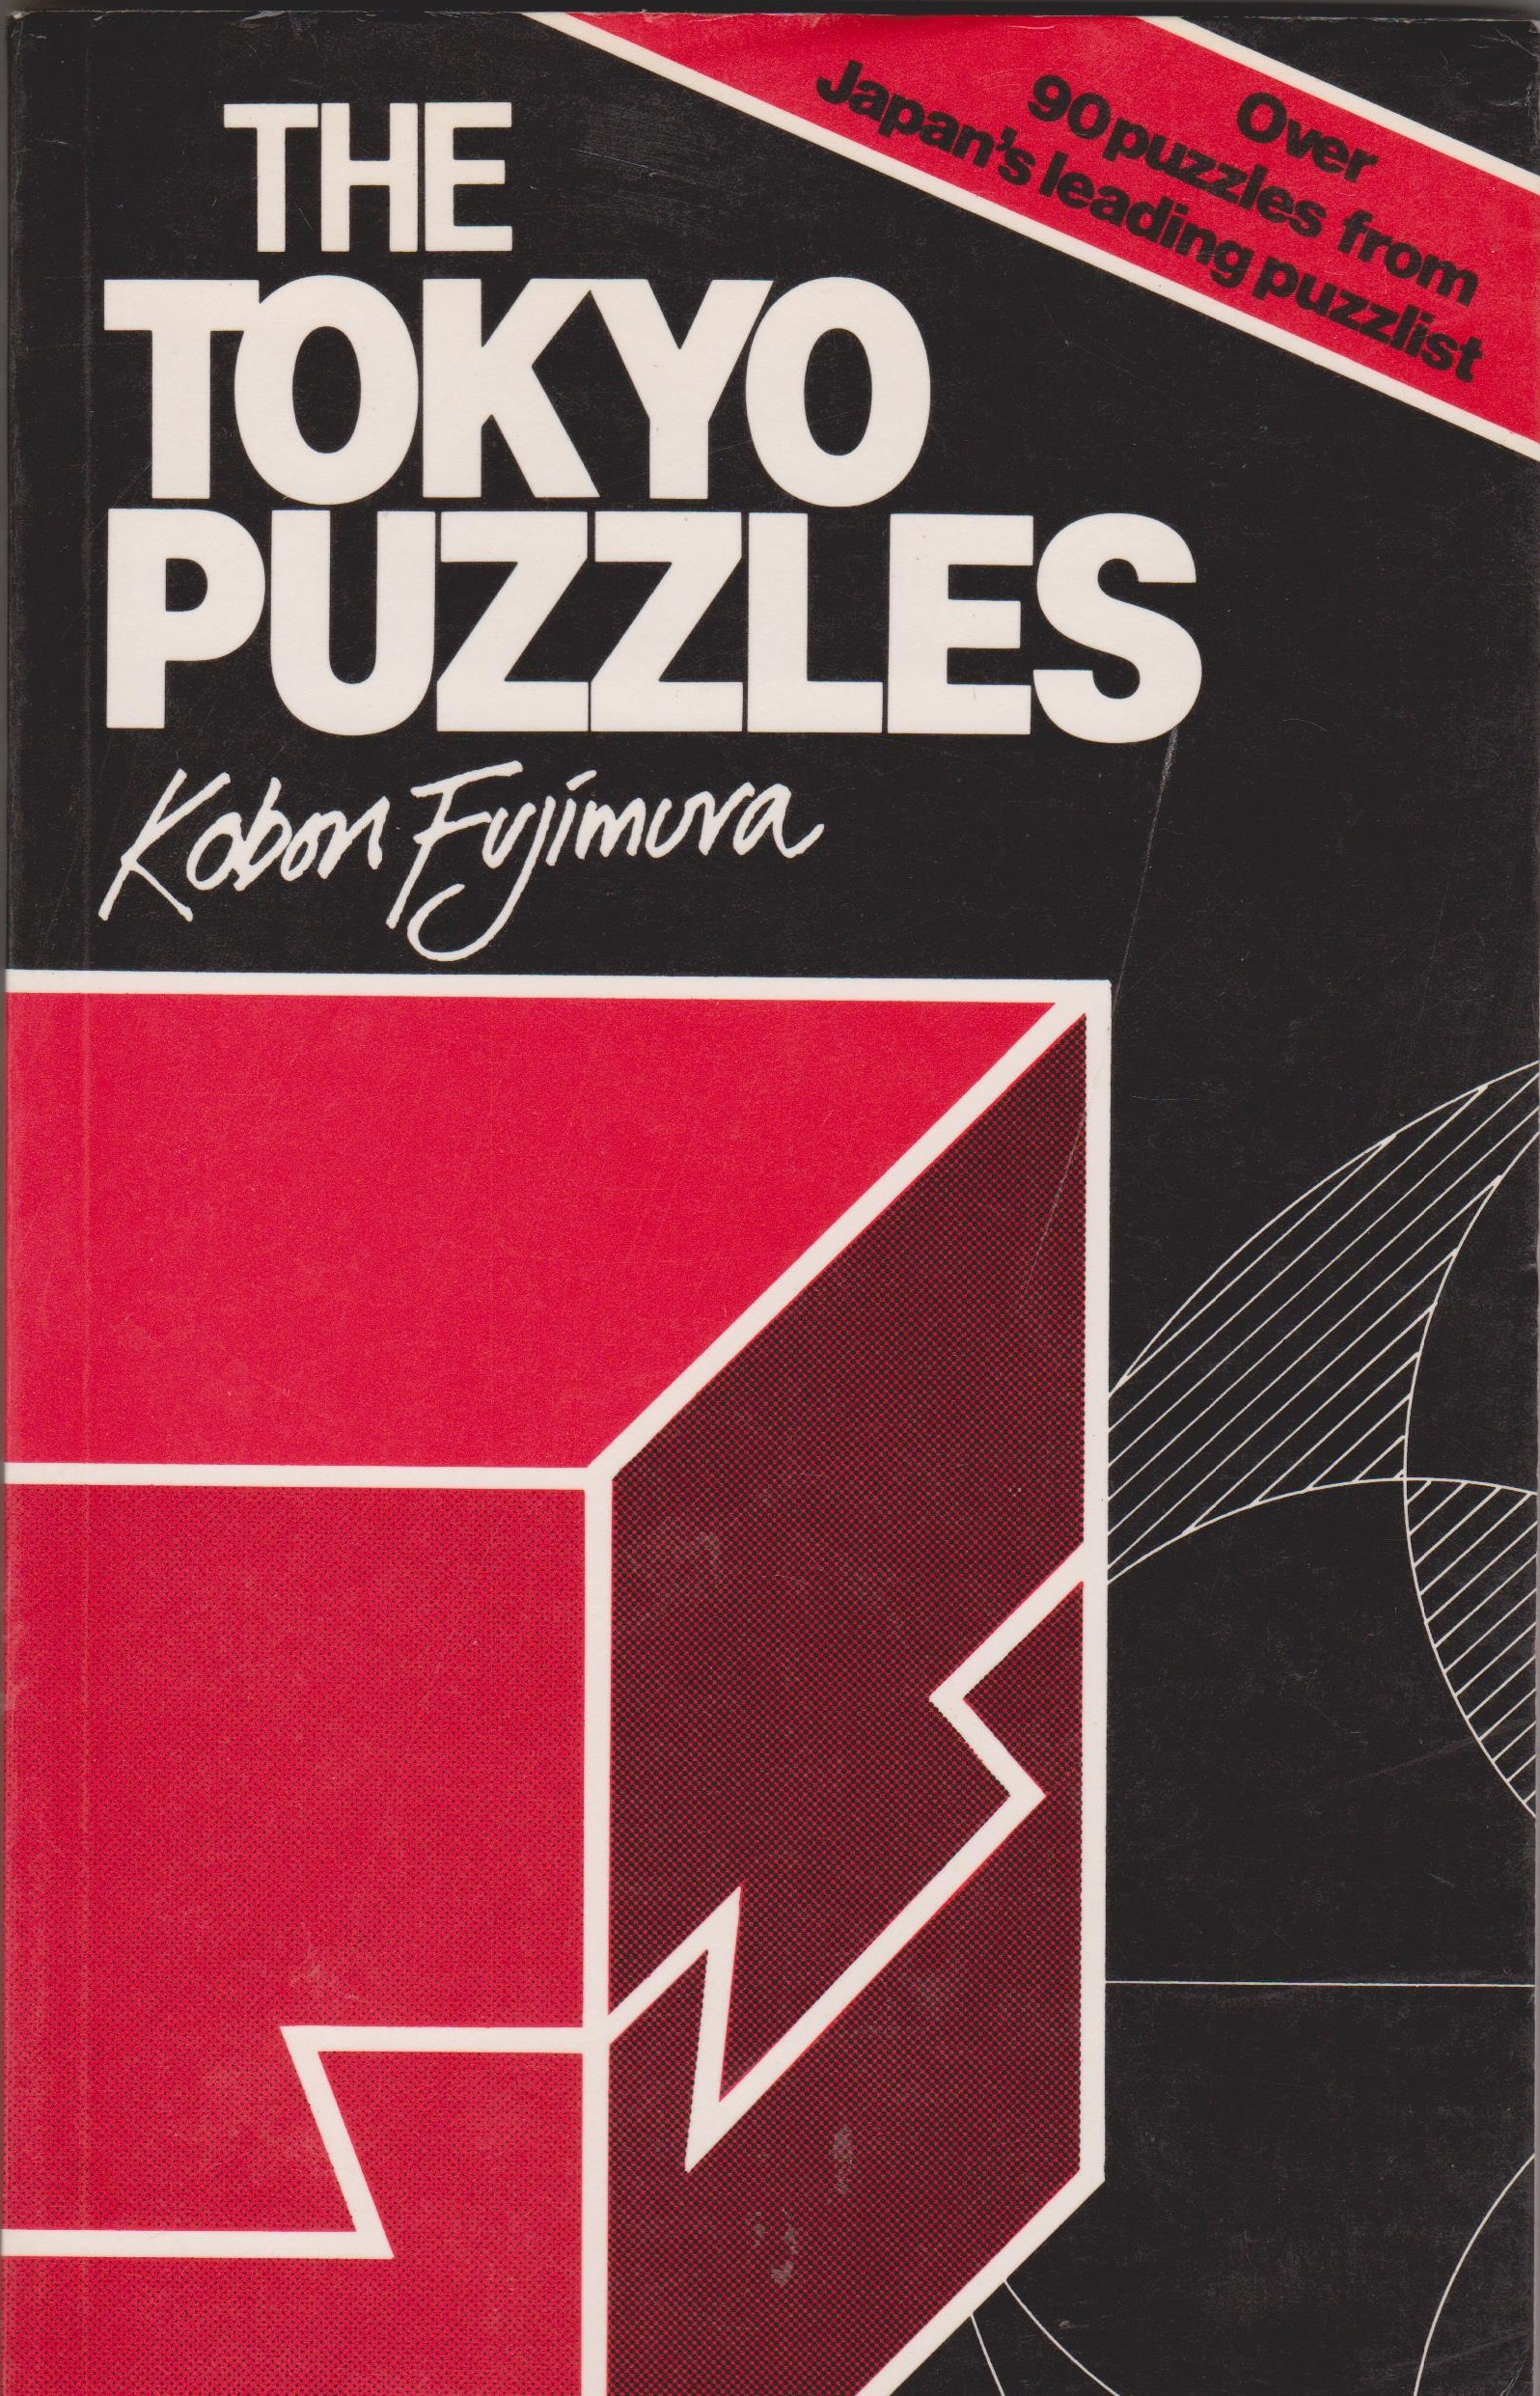 The Tokyo Puzzles